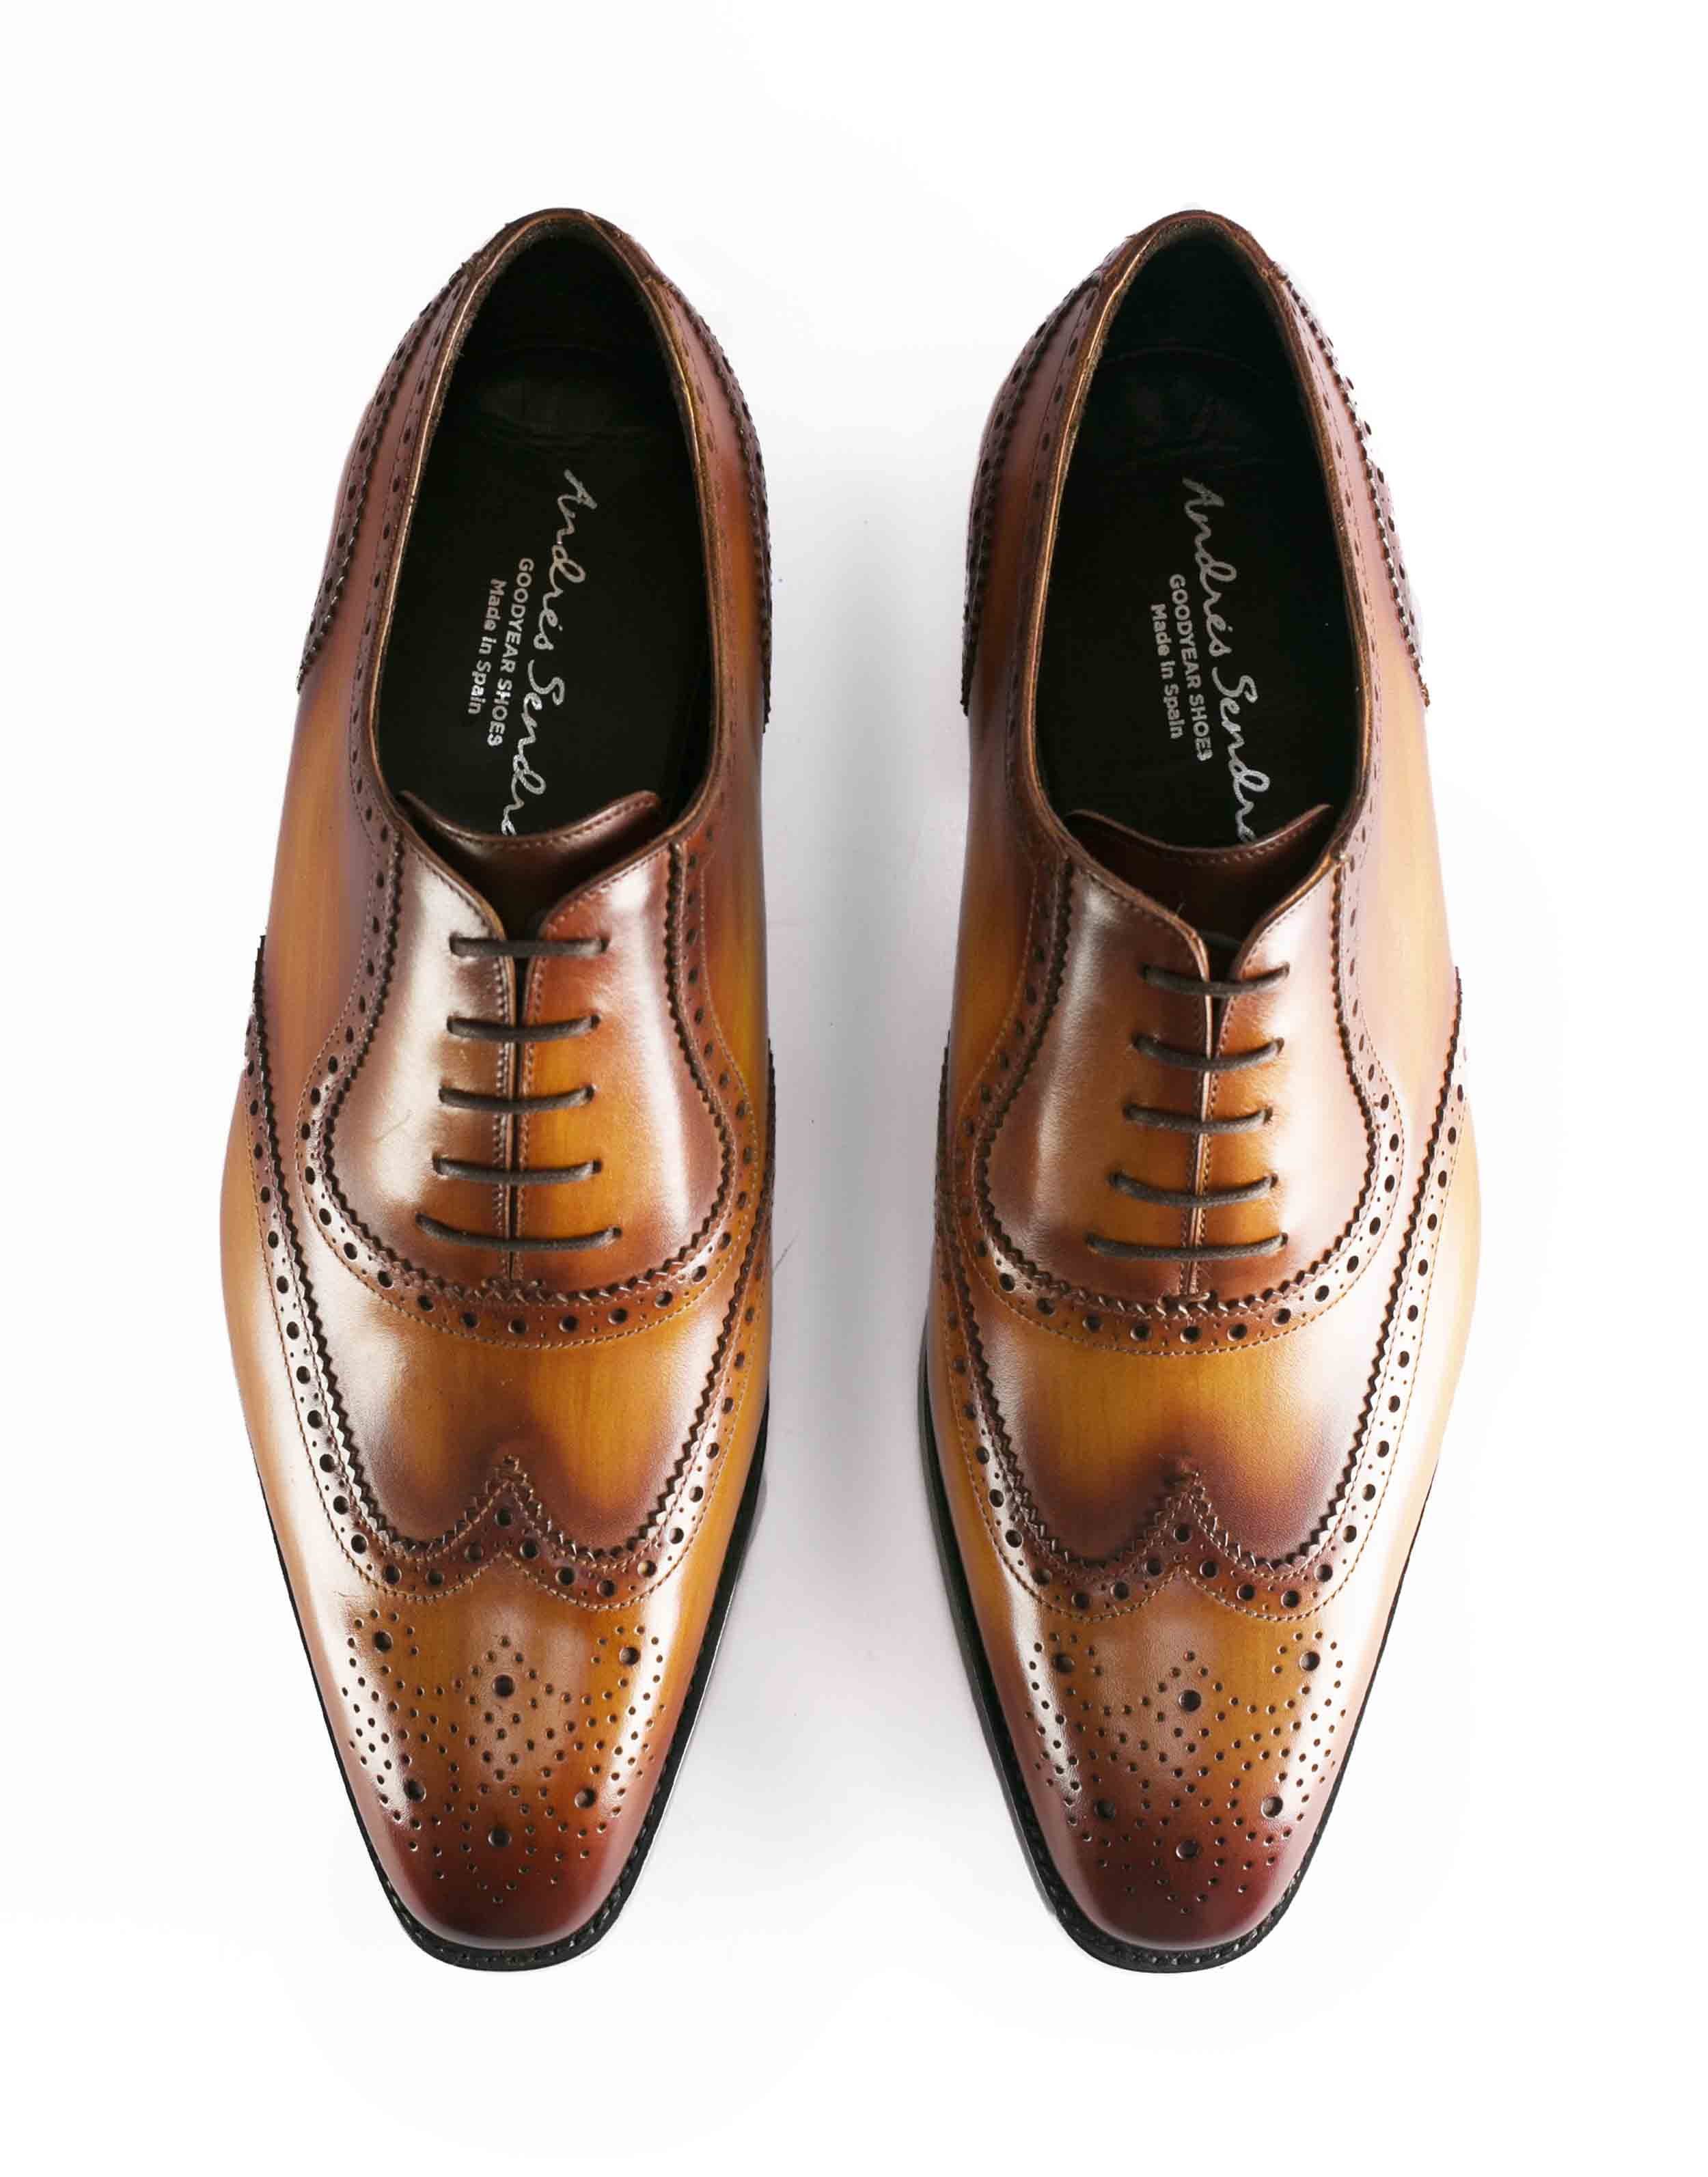 BROWN WINGTIP BROGUE OXFORD4